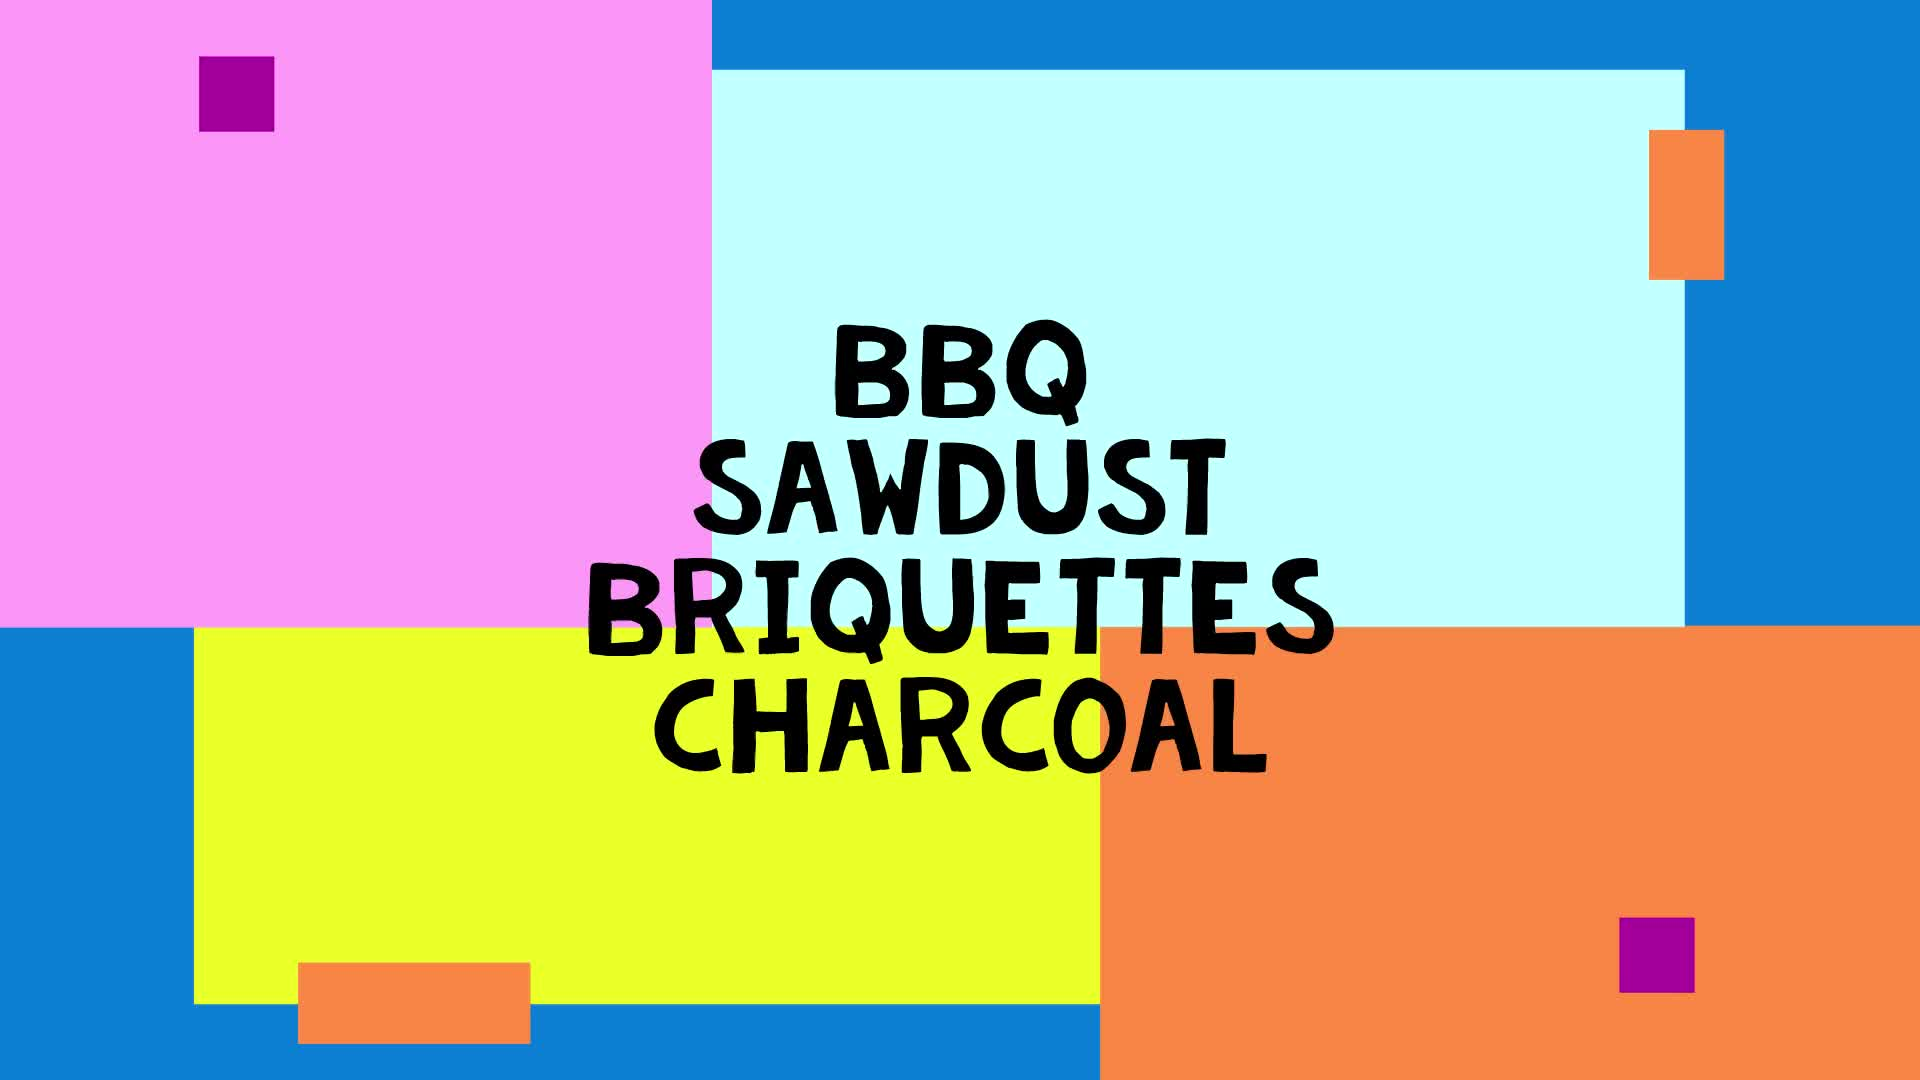 FREE SAMPLE SHIPPING IN SEP/CHEAP PRICE WITH HIGH QUALITY/VIETNAMESE SAWDUST BRIQUETTE CHARCOAL BBQ